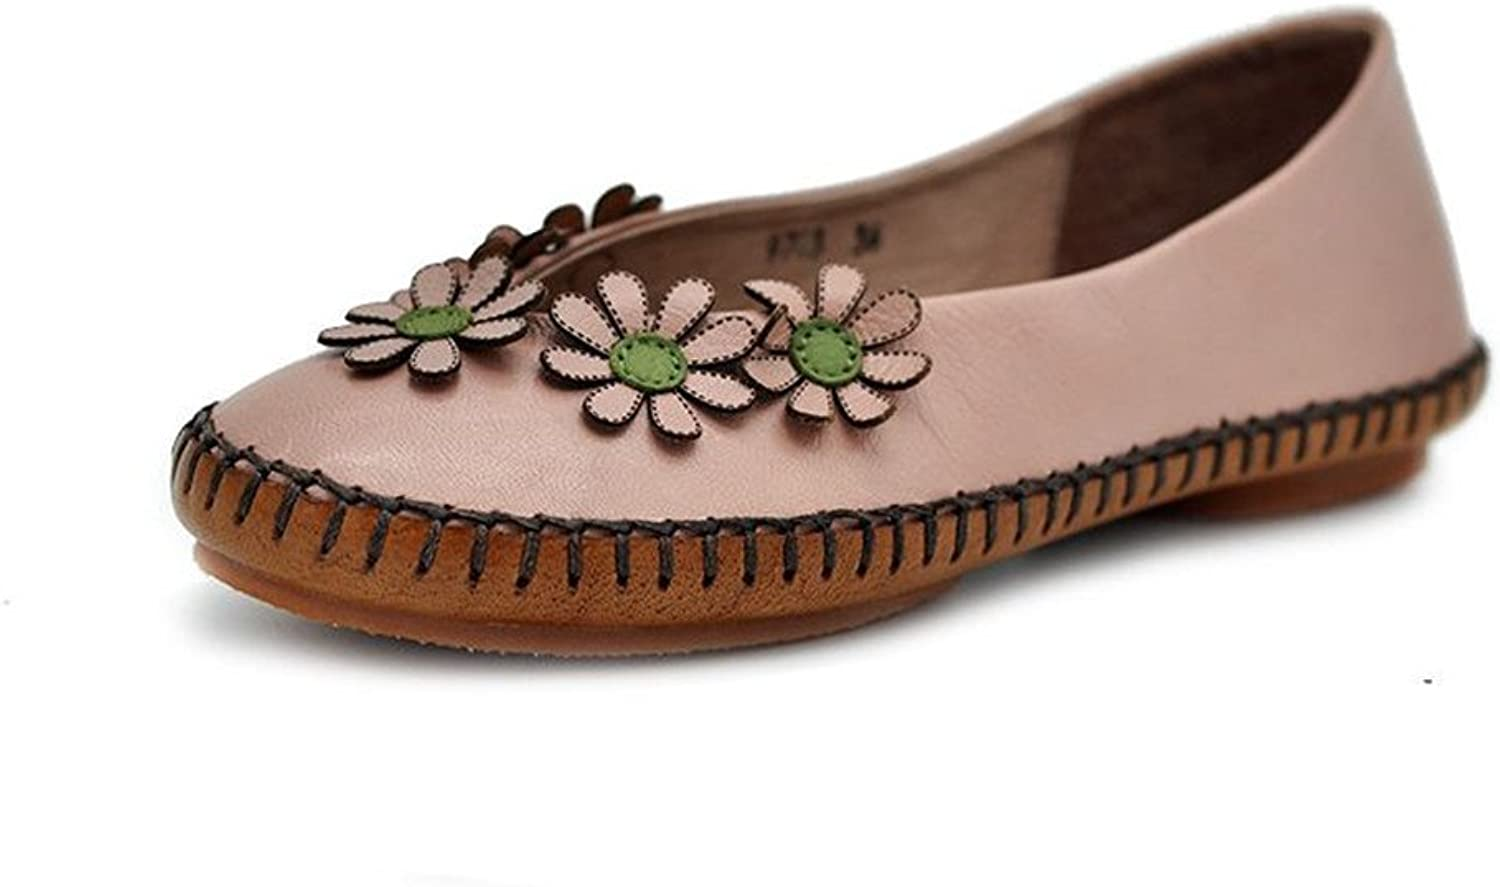 Dwarves Pink Handmade Leather Flat Loafer shoes with Flowers for Women